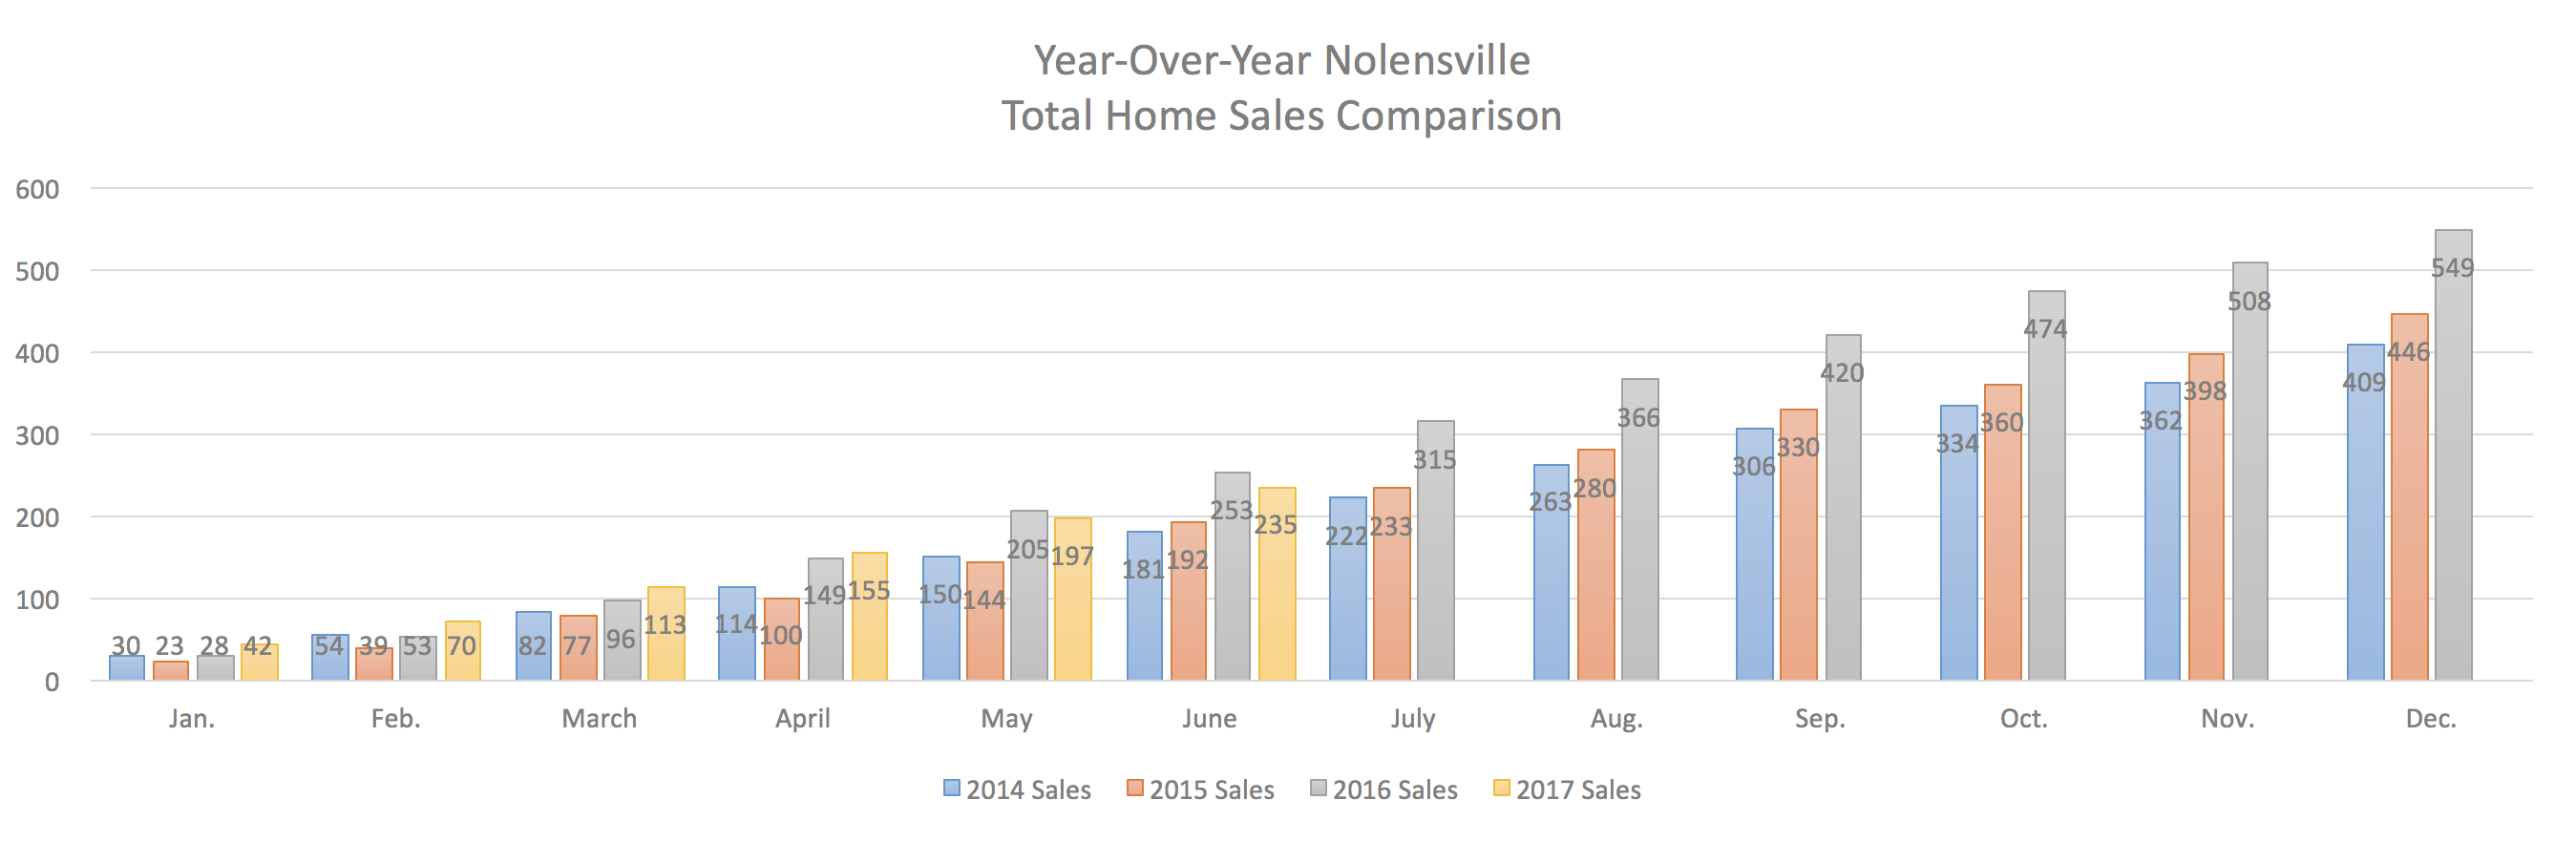 Nolensville Year-Over-Year Home Sales Through June 2017